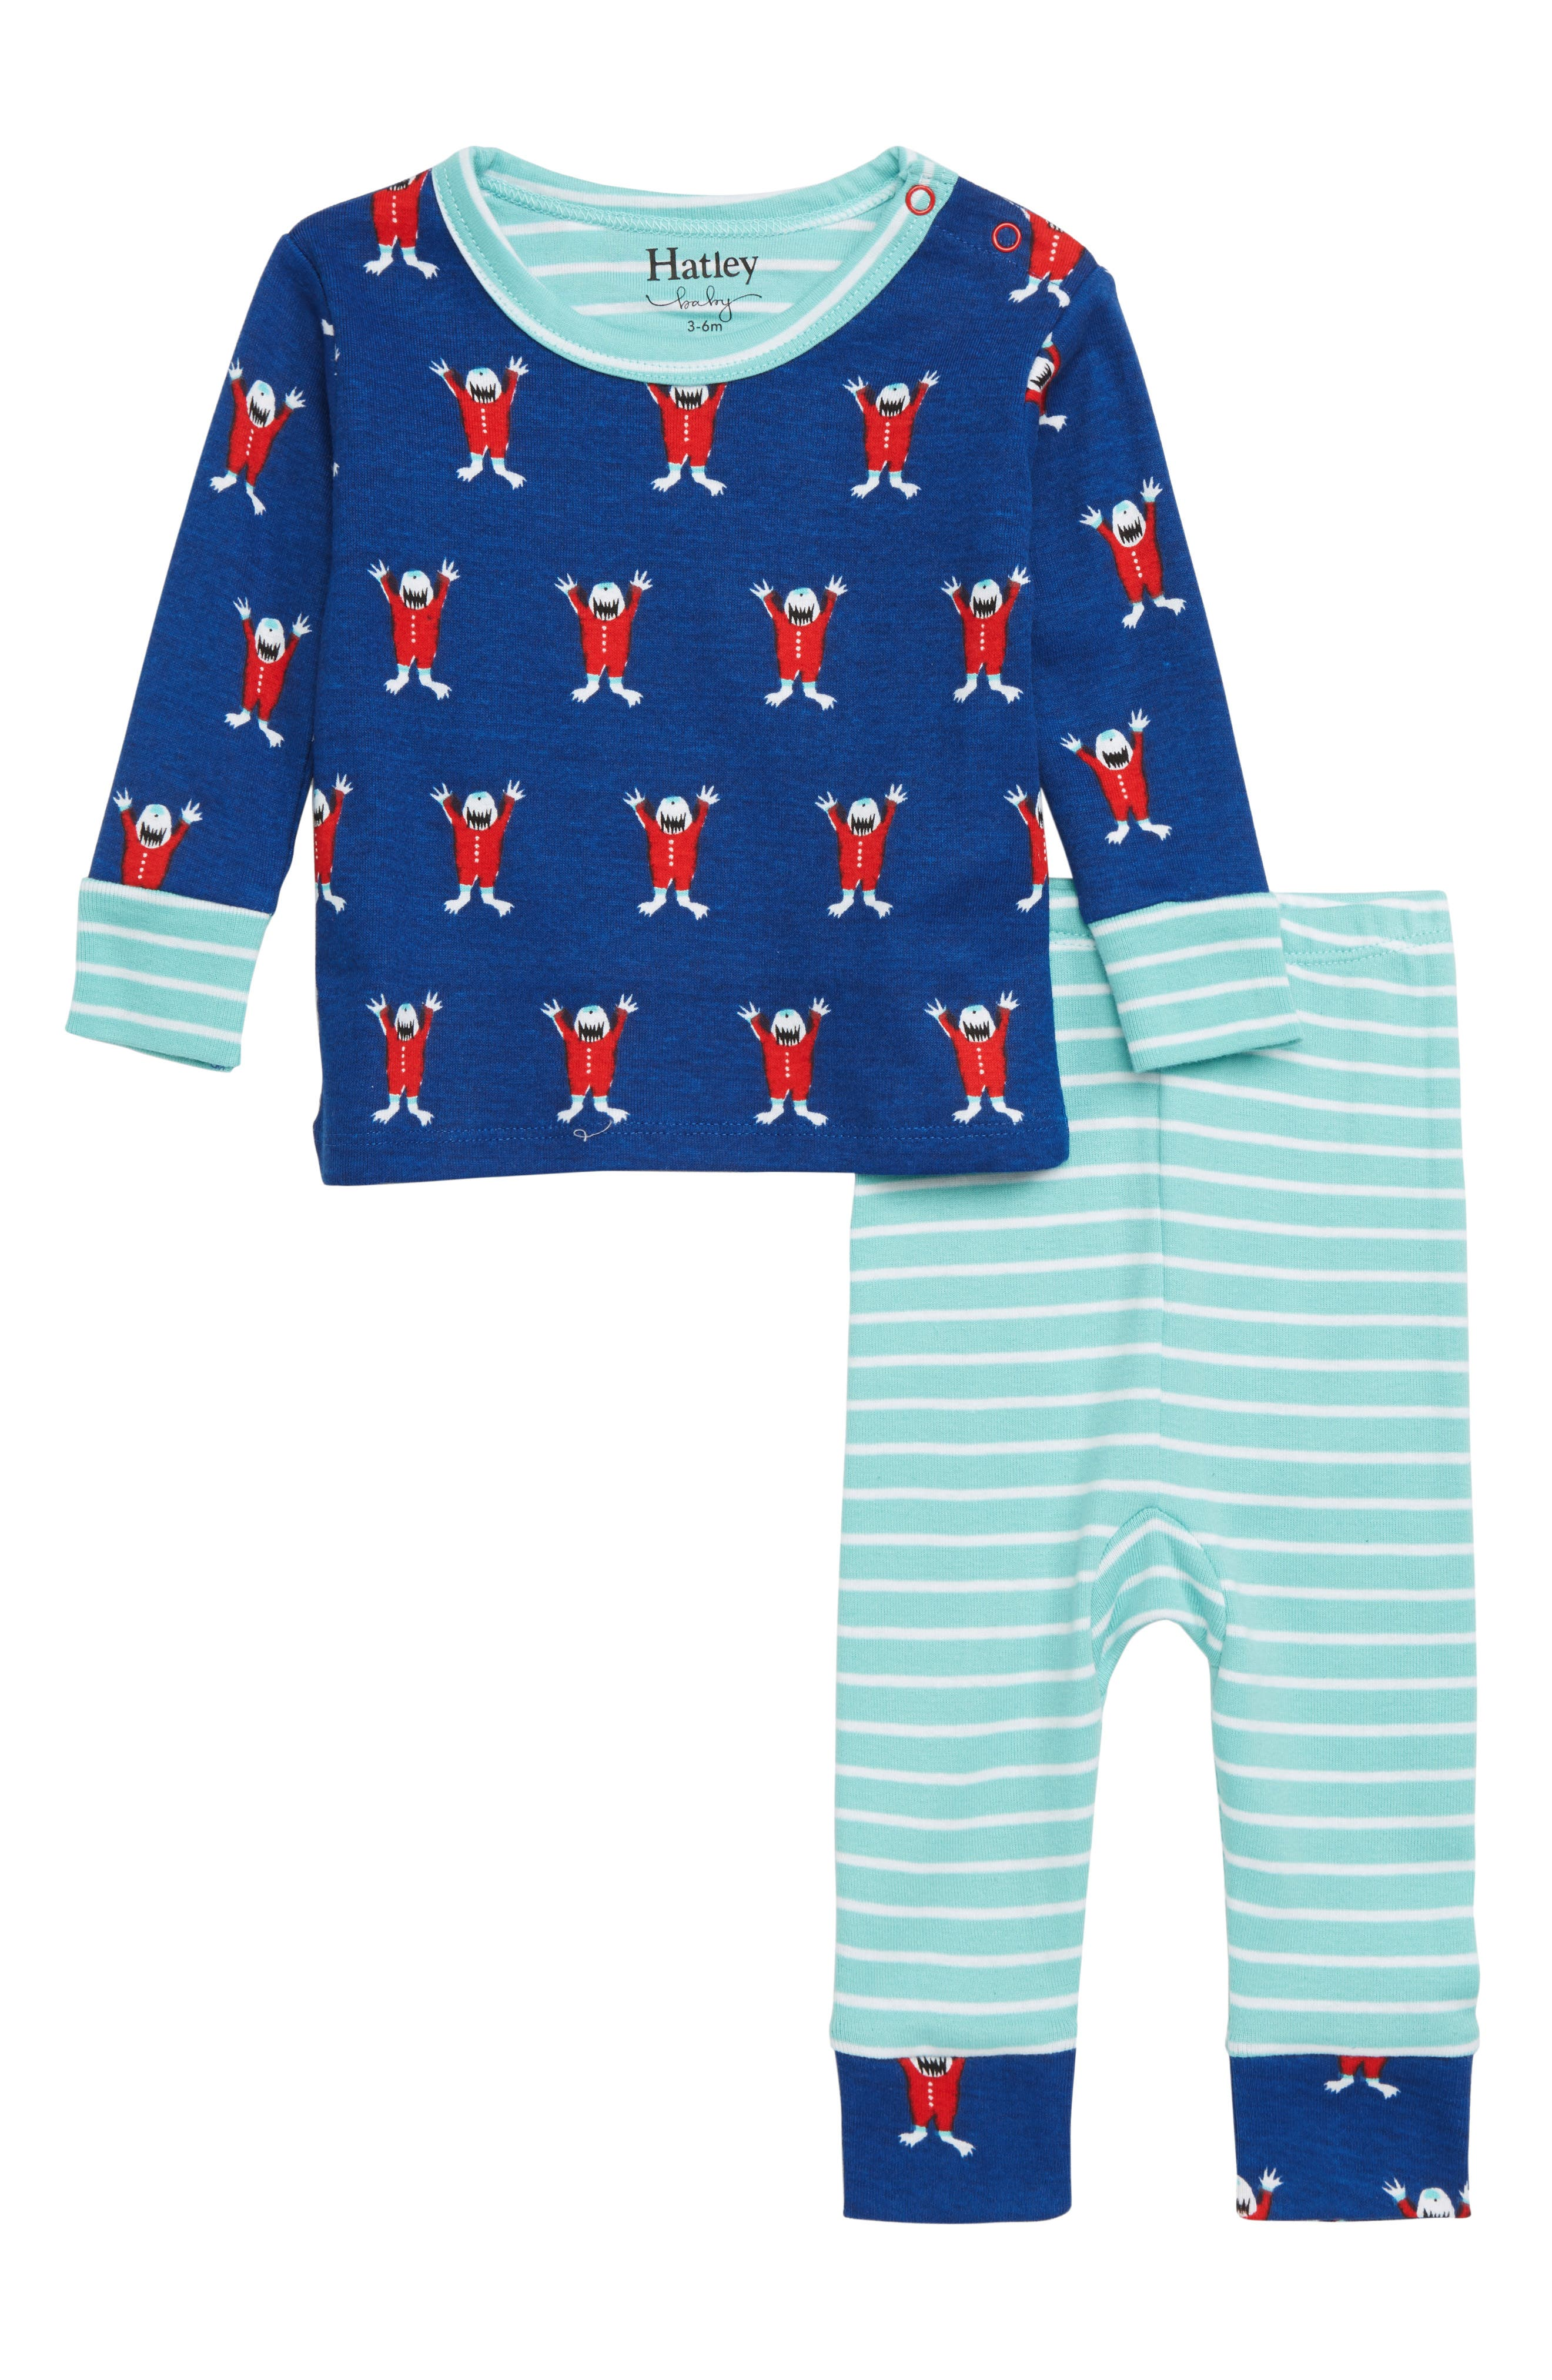 Infant Boys Hatley Organic Cotton Fitted TwoPiece Pajamas Size 1824M  Blue